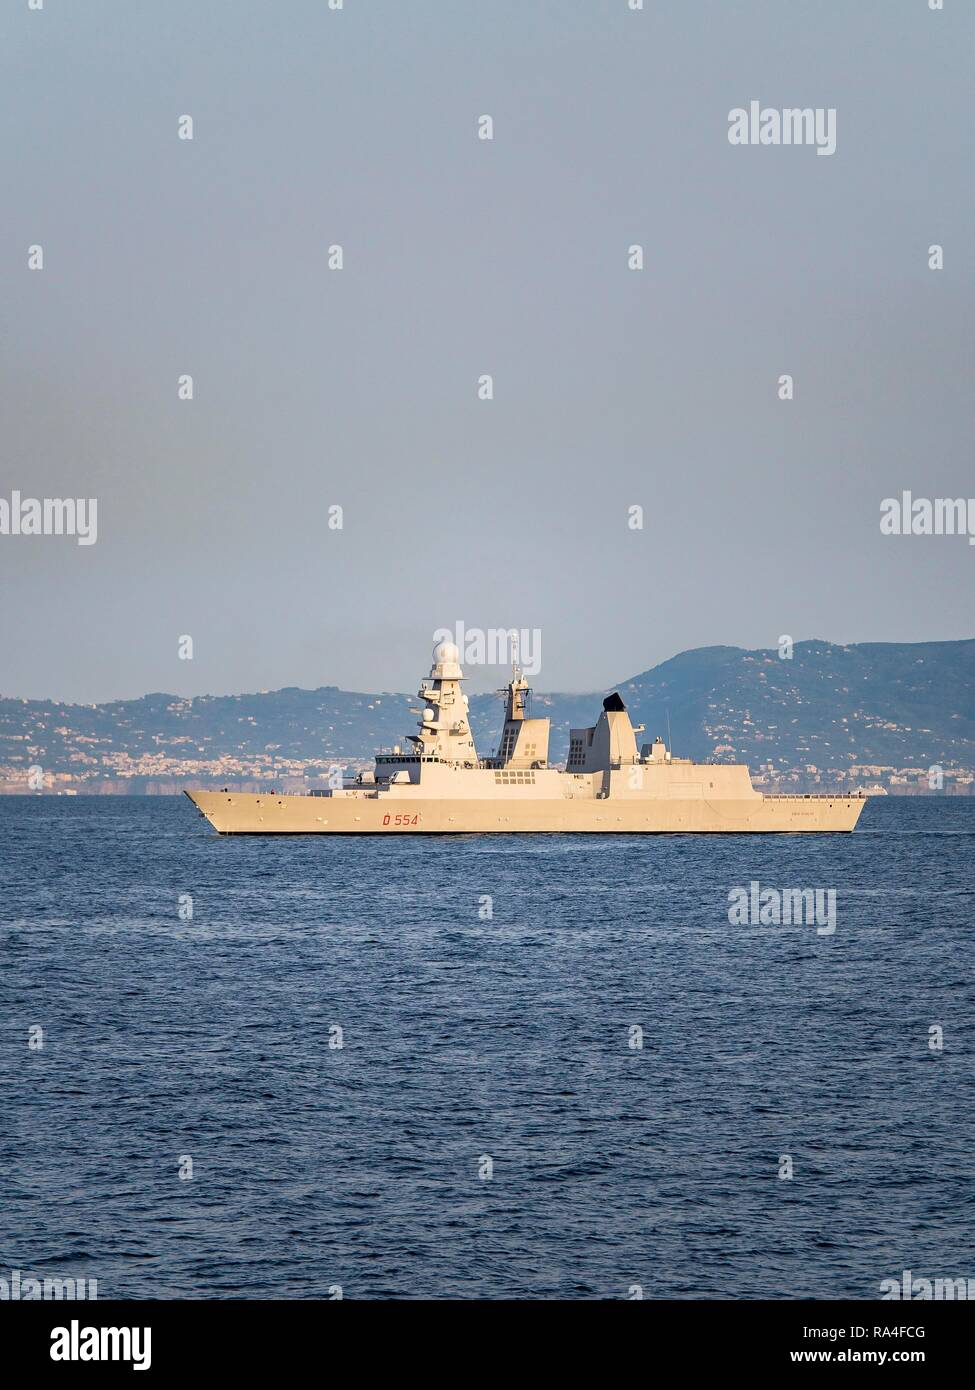 Caio Dullio warship, Horizon class, rocket equipped frigate, escort ship for aircraft carrier, port of Naples, Naples - Stock Image